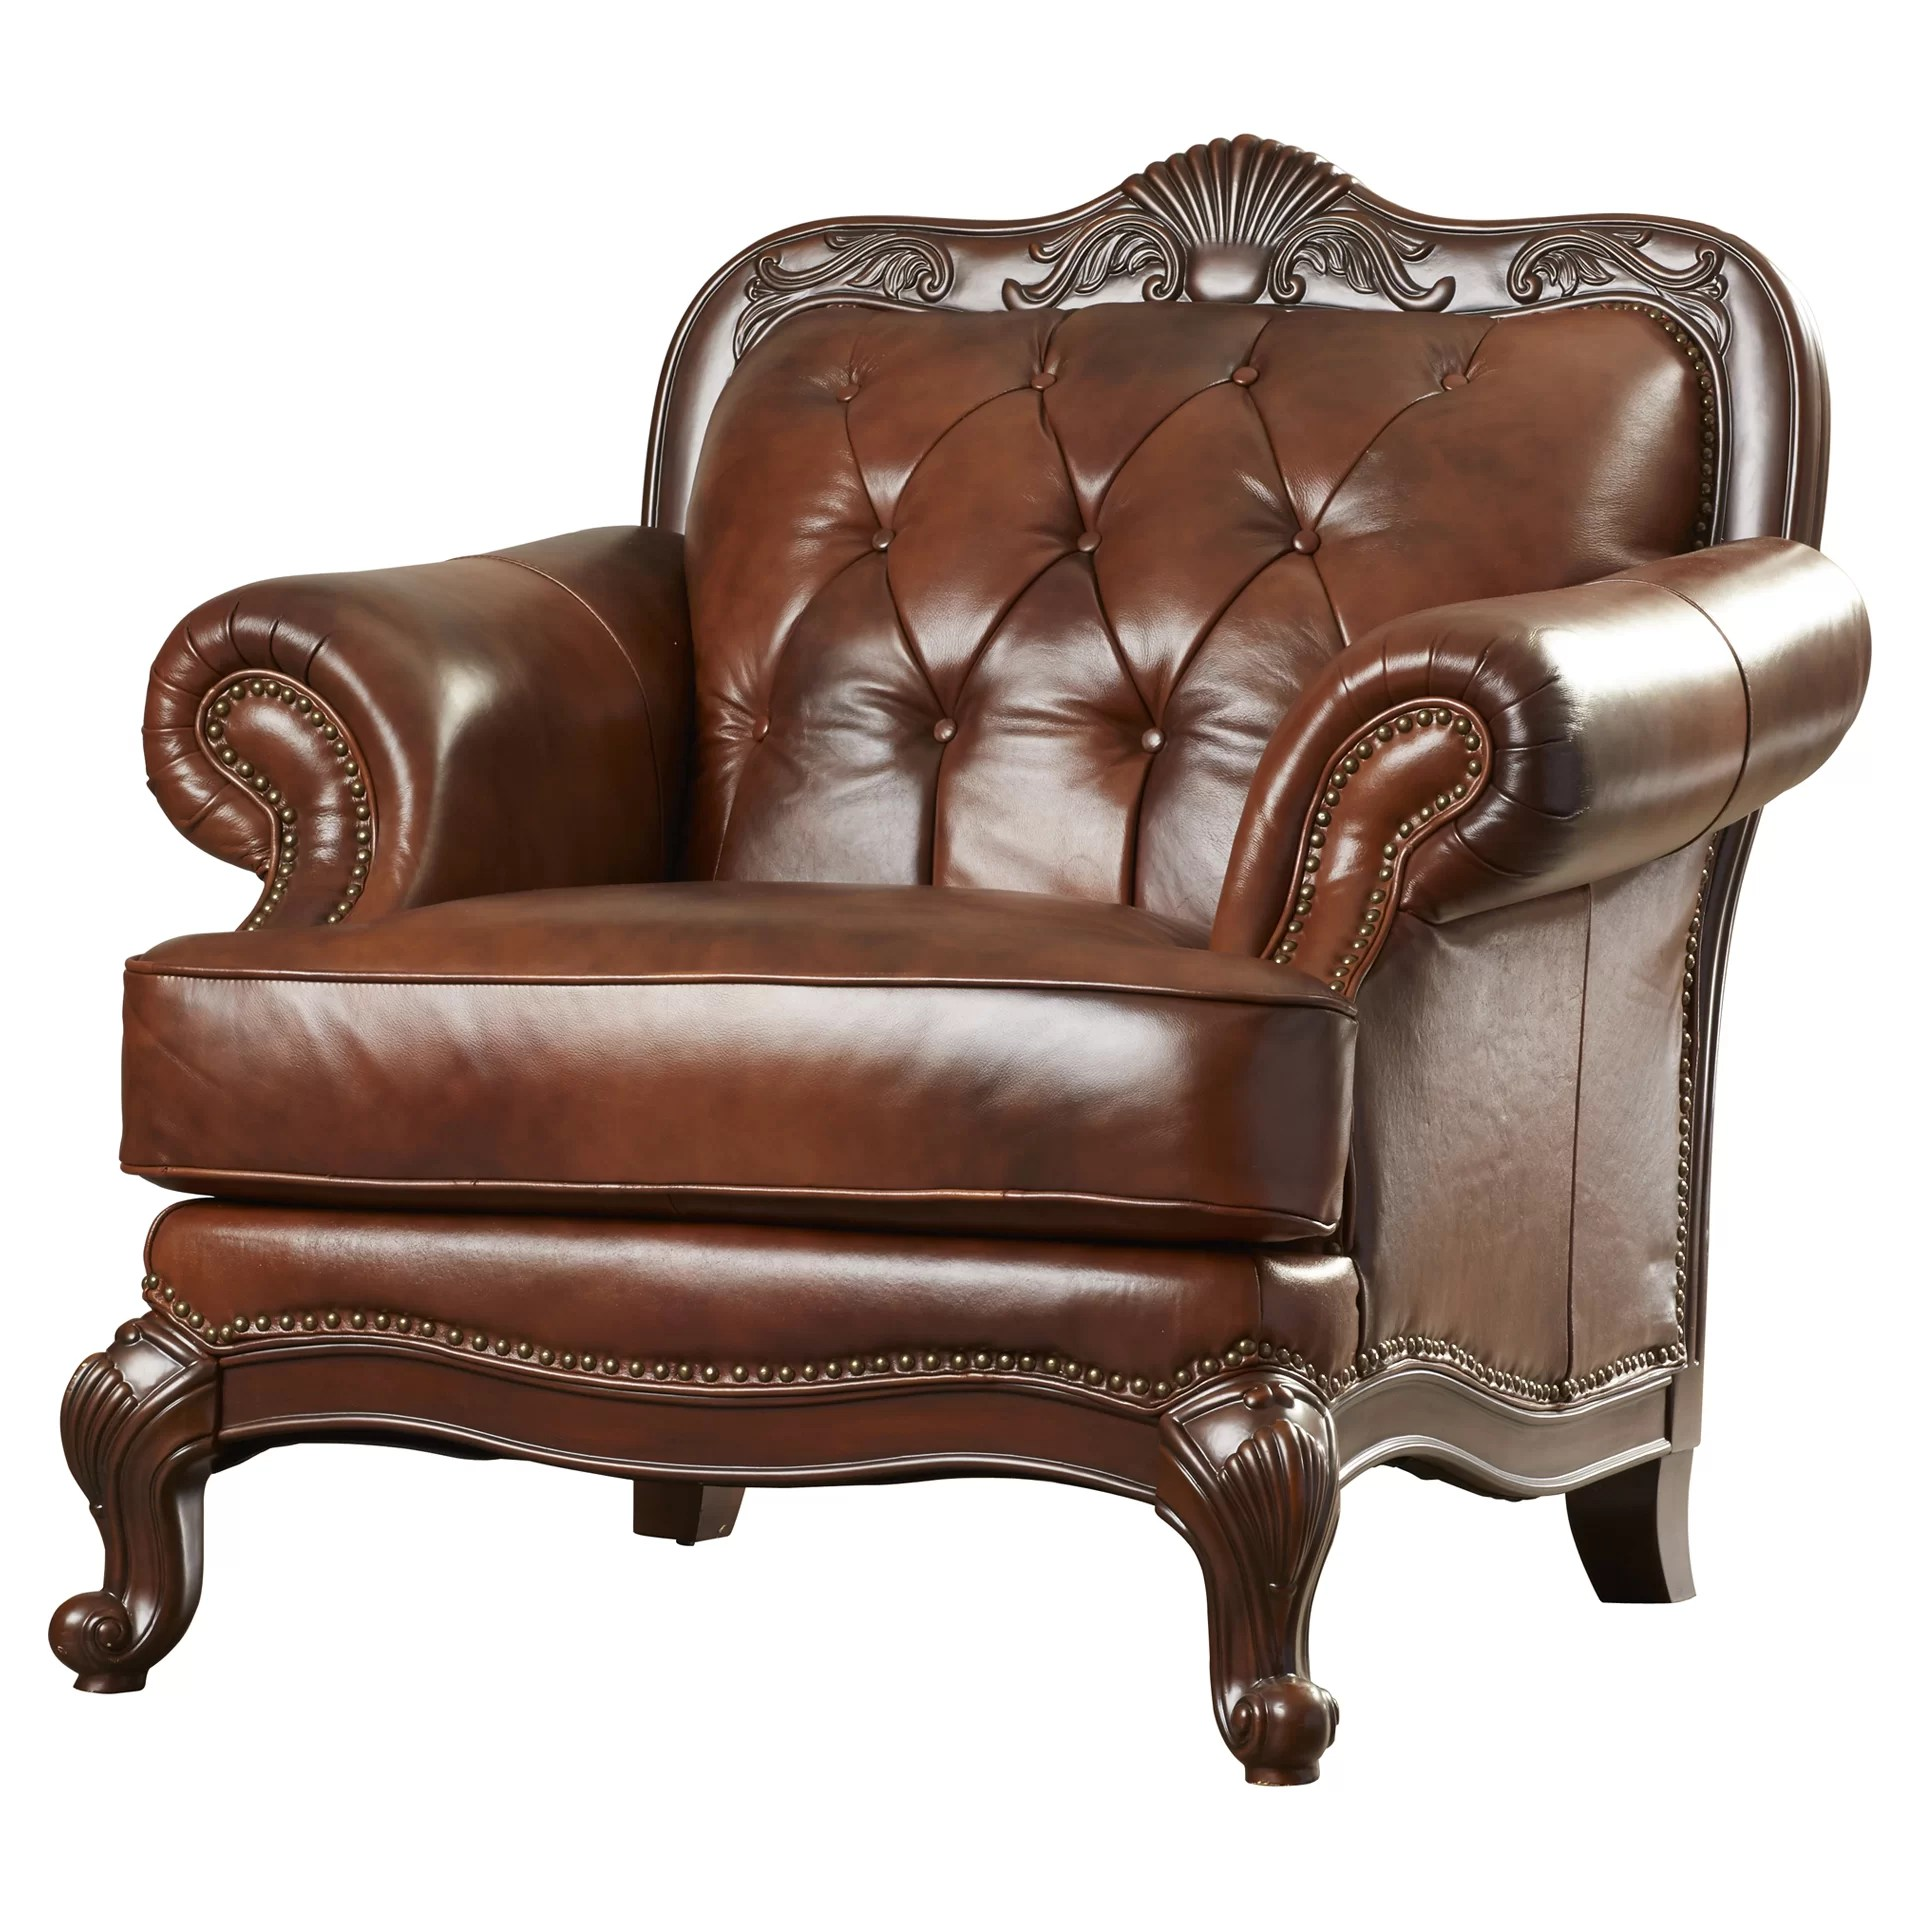 Club Chair Leather Darby Home Co Smith Leather Club Chair And Reviews Wayfair